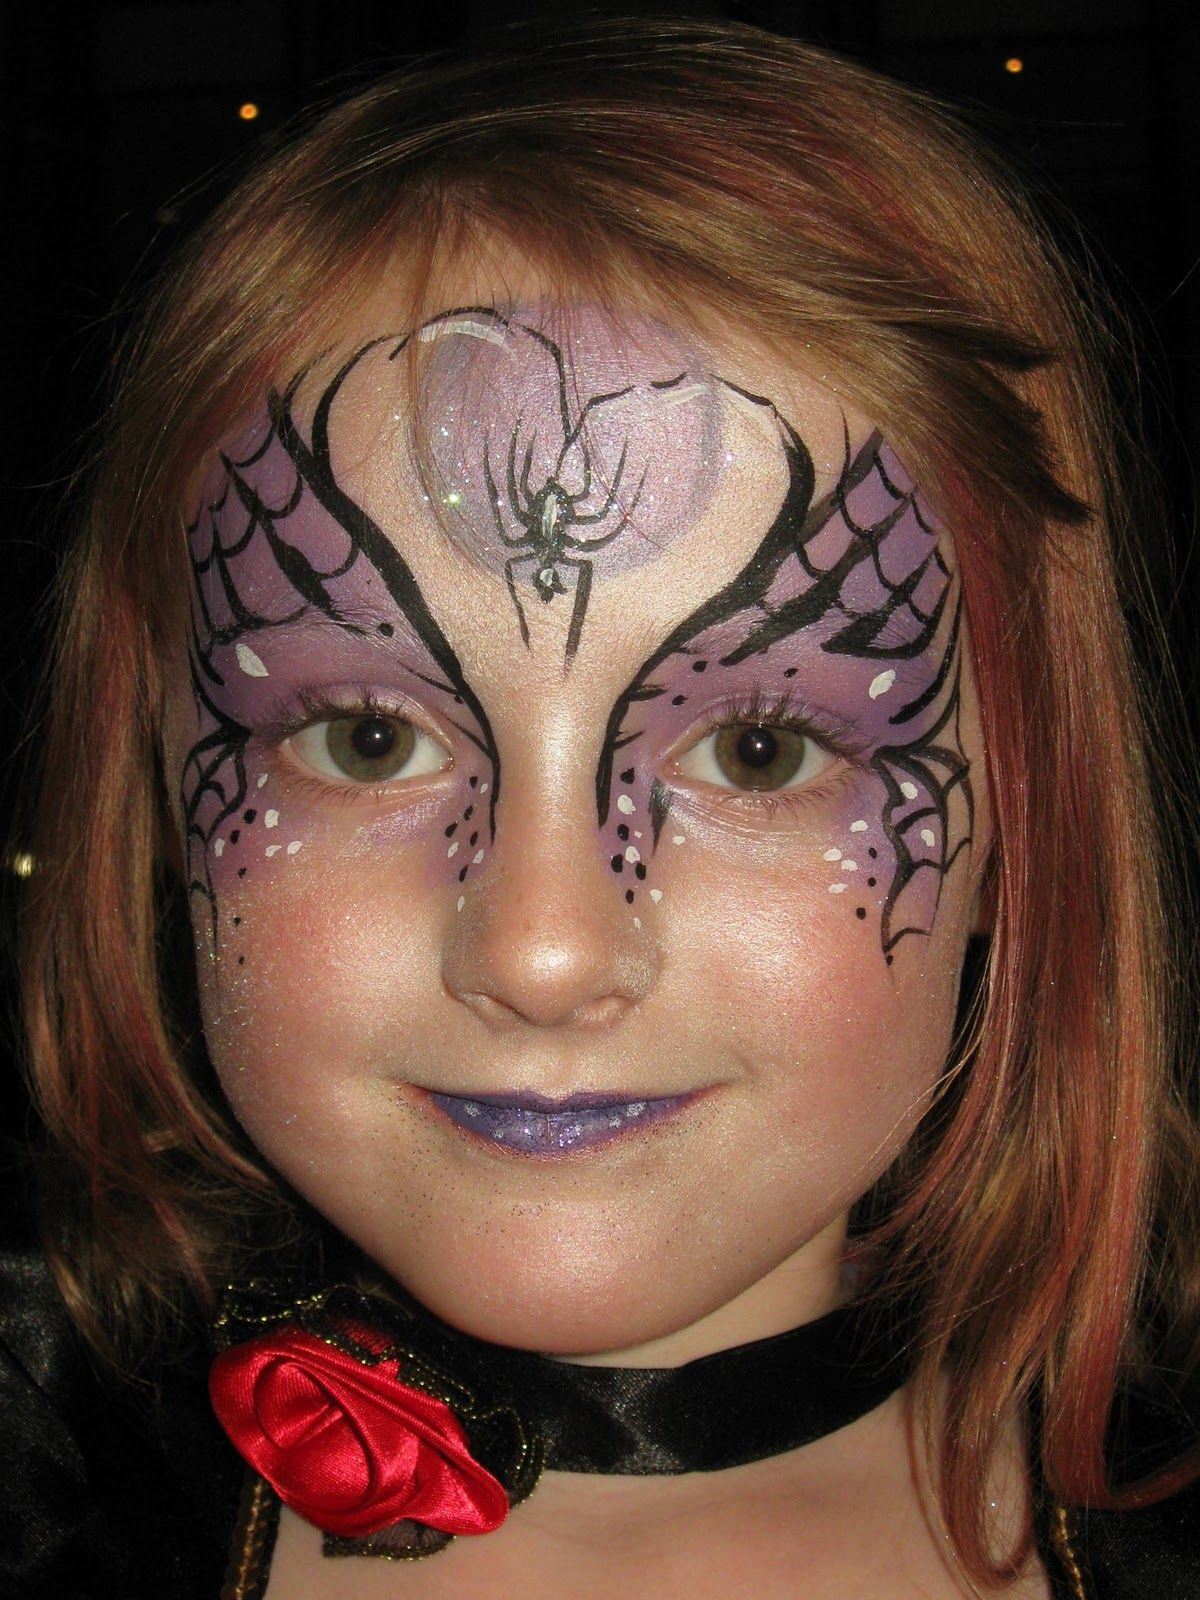 Uncategorized Little Girl Witch Face Paint nice witch makeup google search halloween pinterest art every day month 17 well it was face painting today i went straight from my job to do at the bi